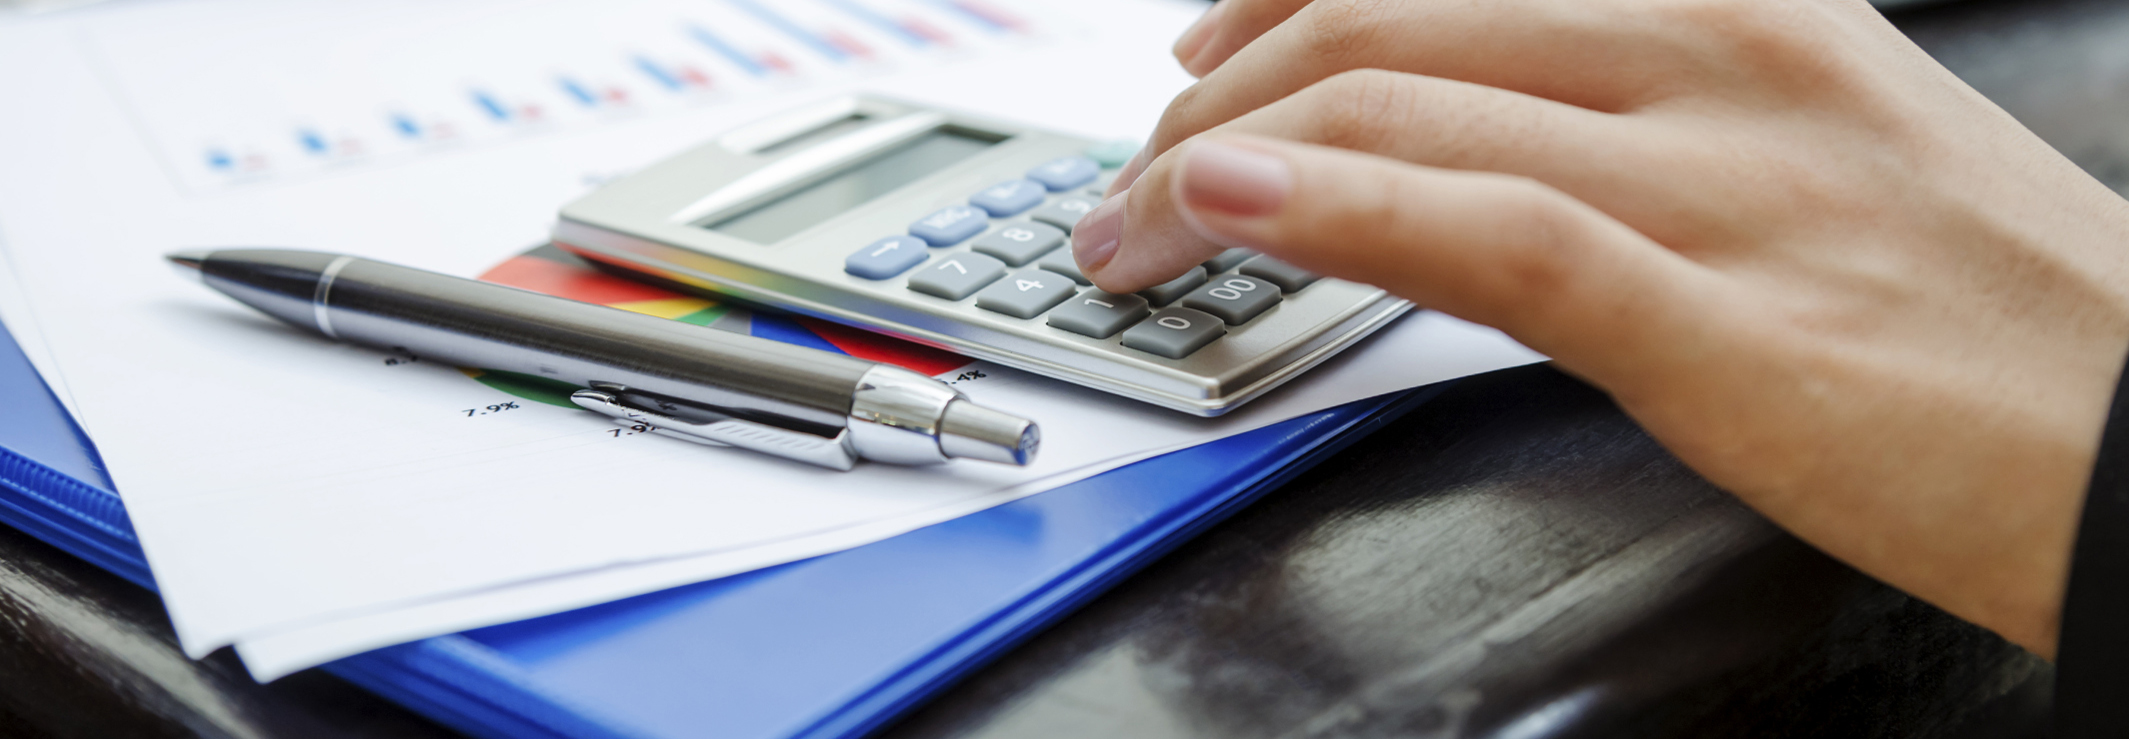 Loan calculator picture free library Simple Loan Calculator from TruMark Financial Credit Union picture free library